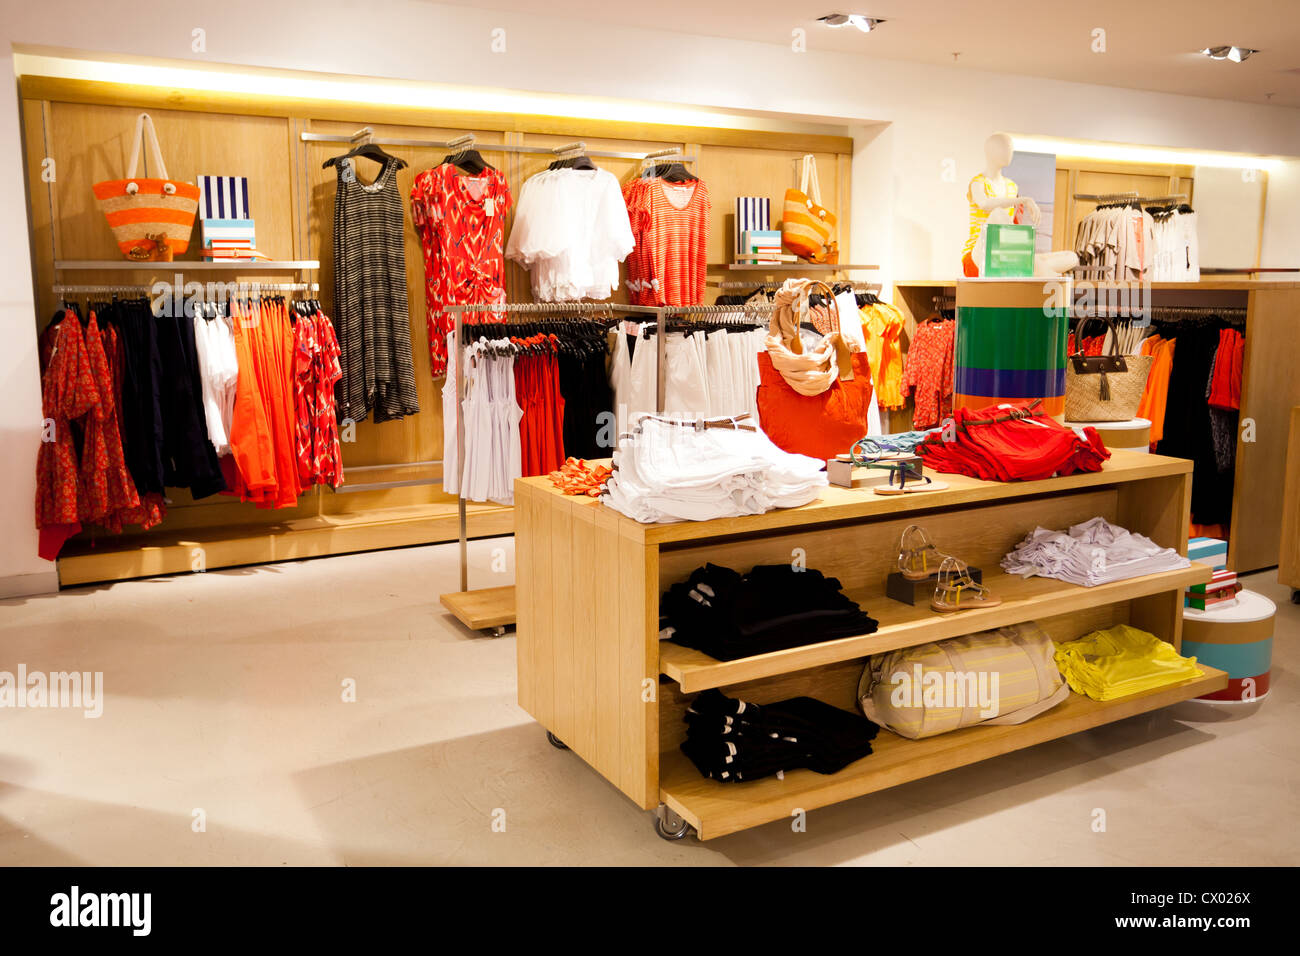 09e04f2741c interior of women's clothing store Stock Photo: 50403554 - Alamy